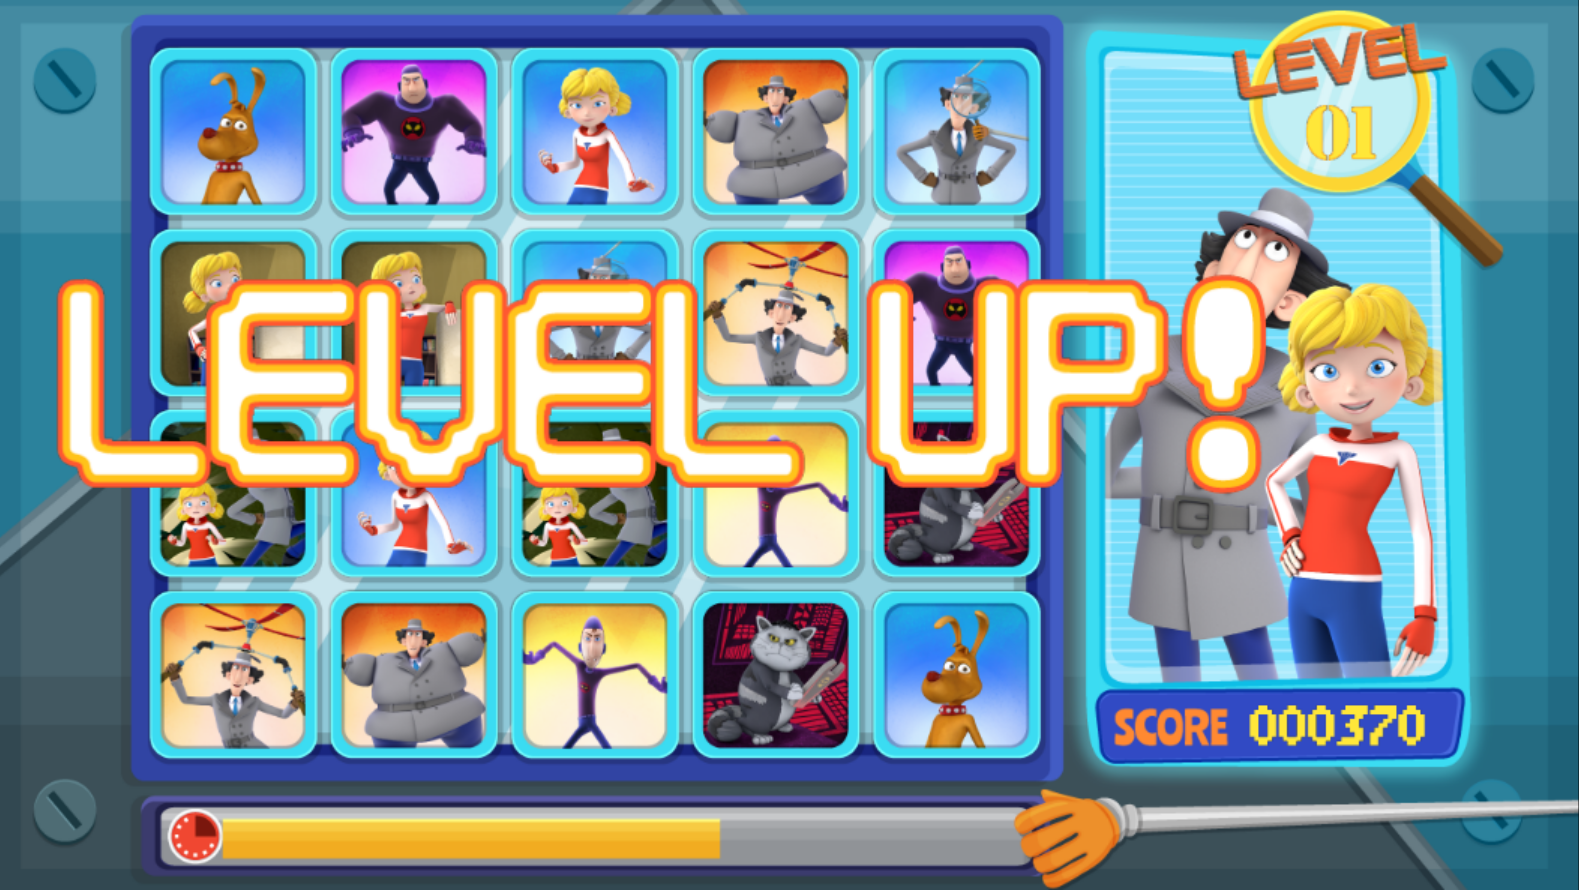 Plays.org Inspector Gadget Let's Inspect Card Matching Game